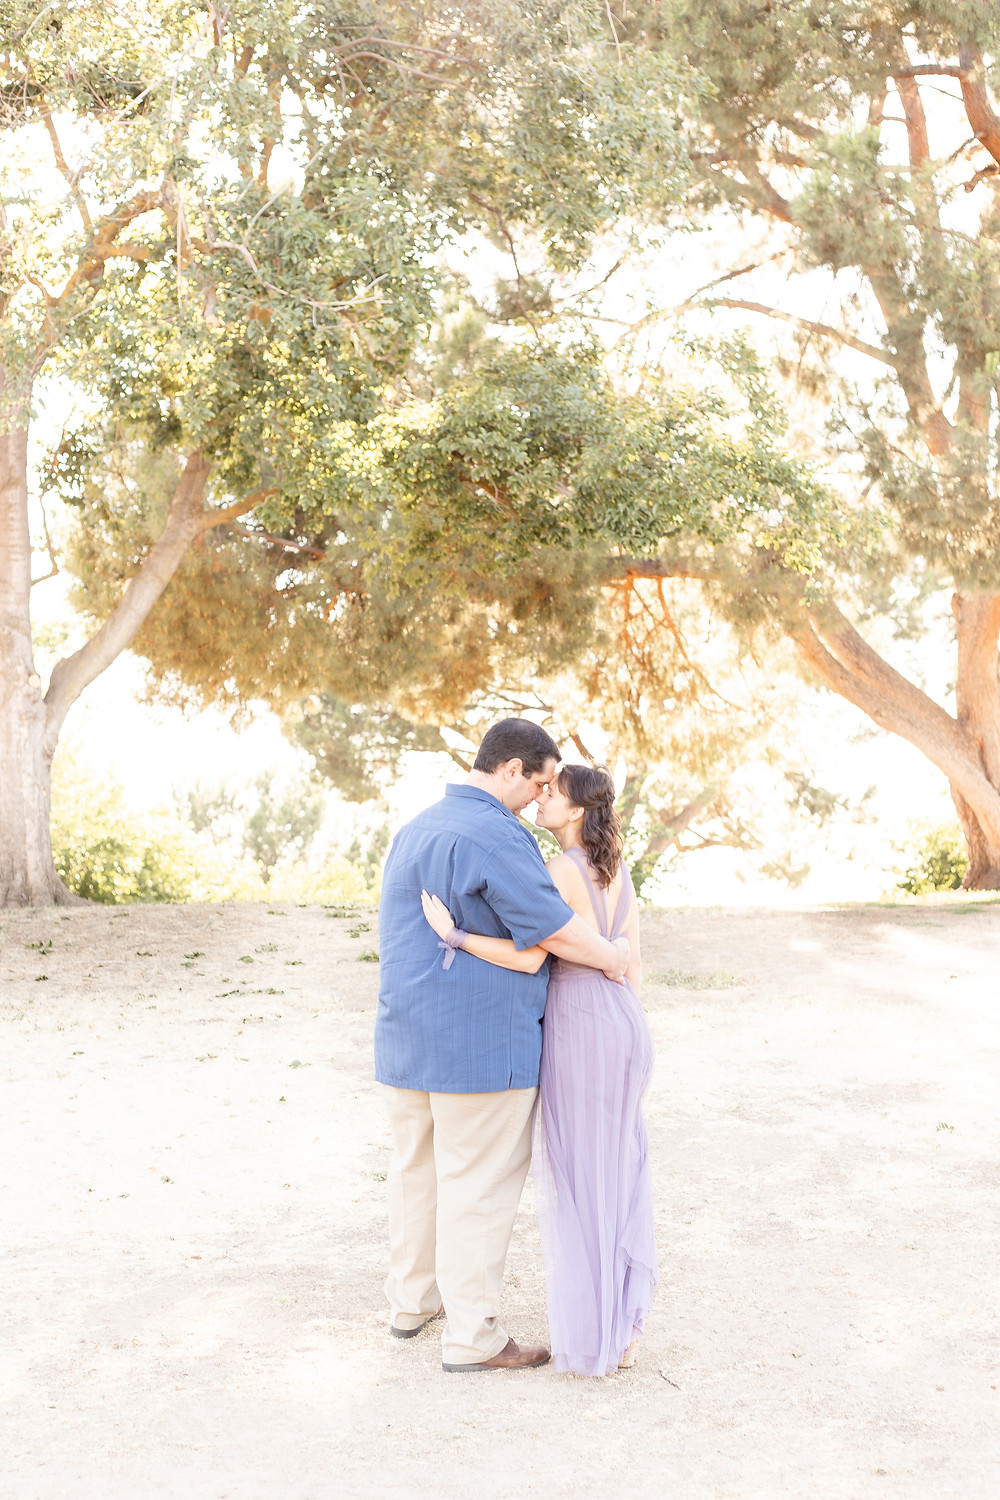 A couple in Woodward Park in Fresno, California hold each other closely with their backs facing the camera for a couples portrait session.